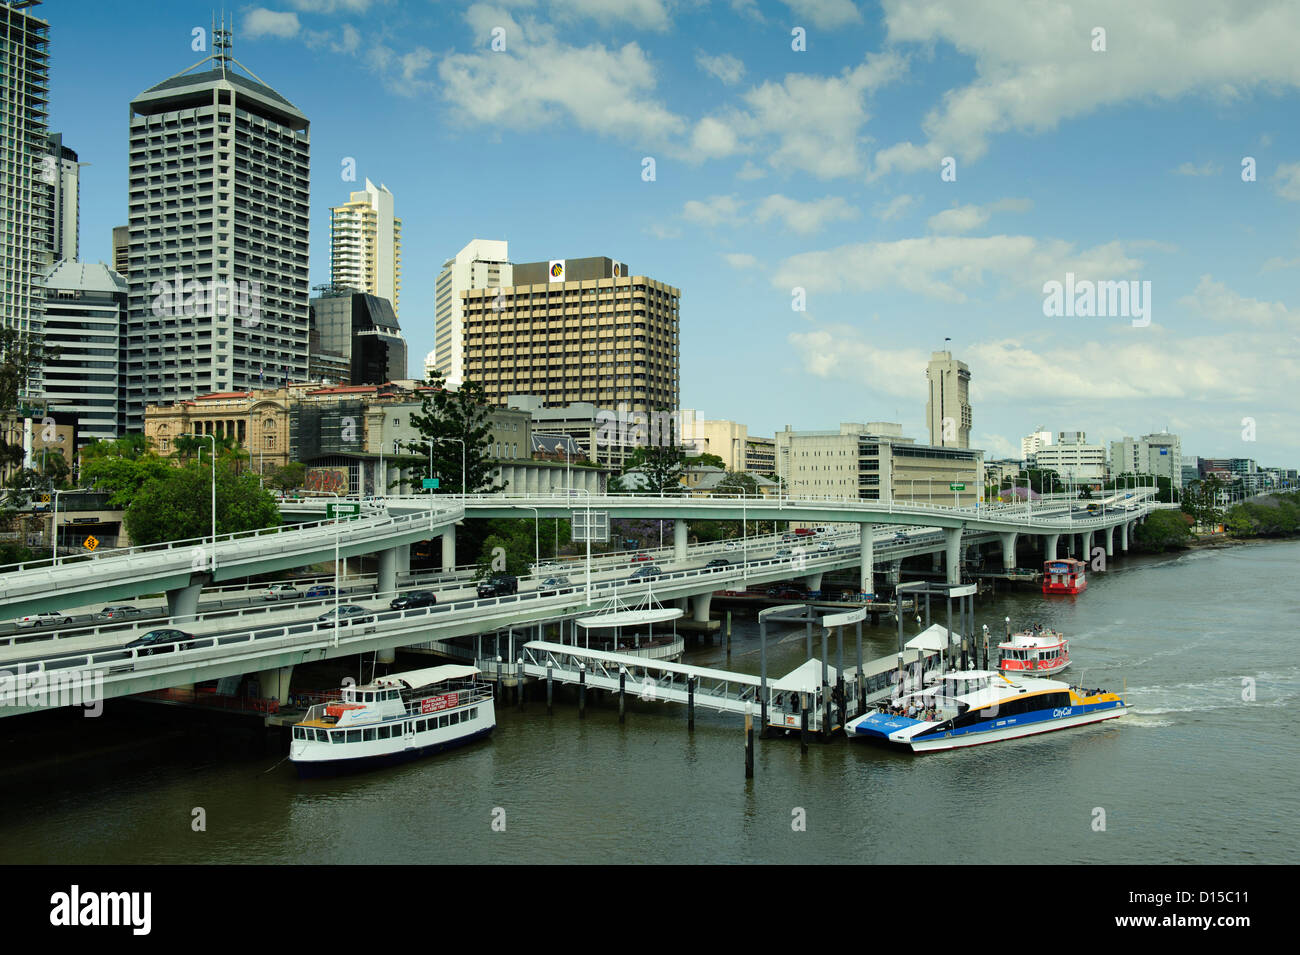 Ferries mooring on Brisbane River in Brisbane, Queensland, Australia - Stock Image